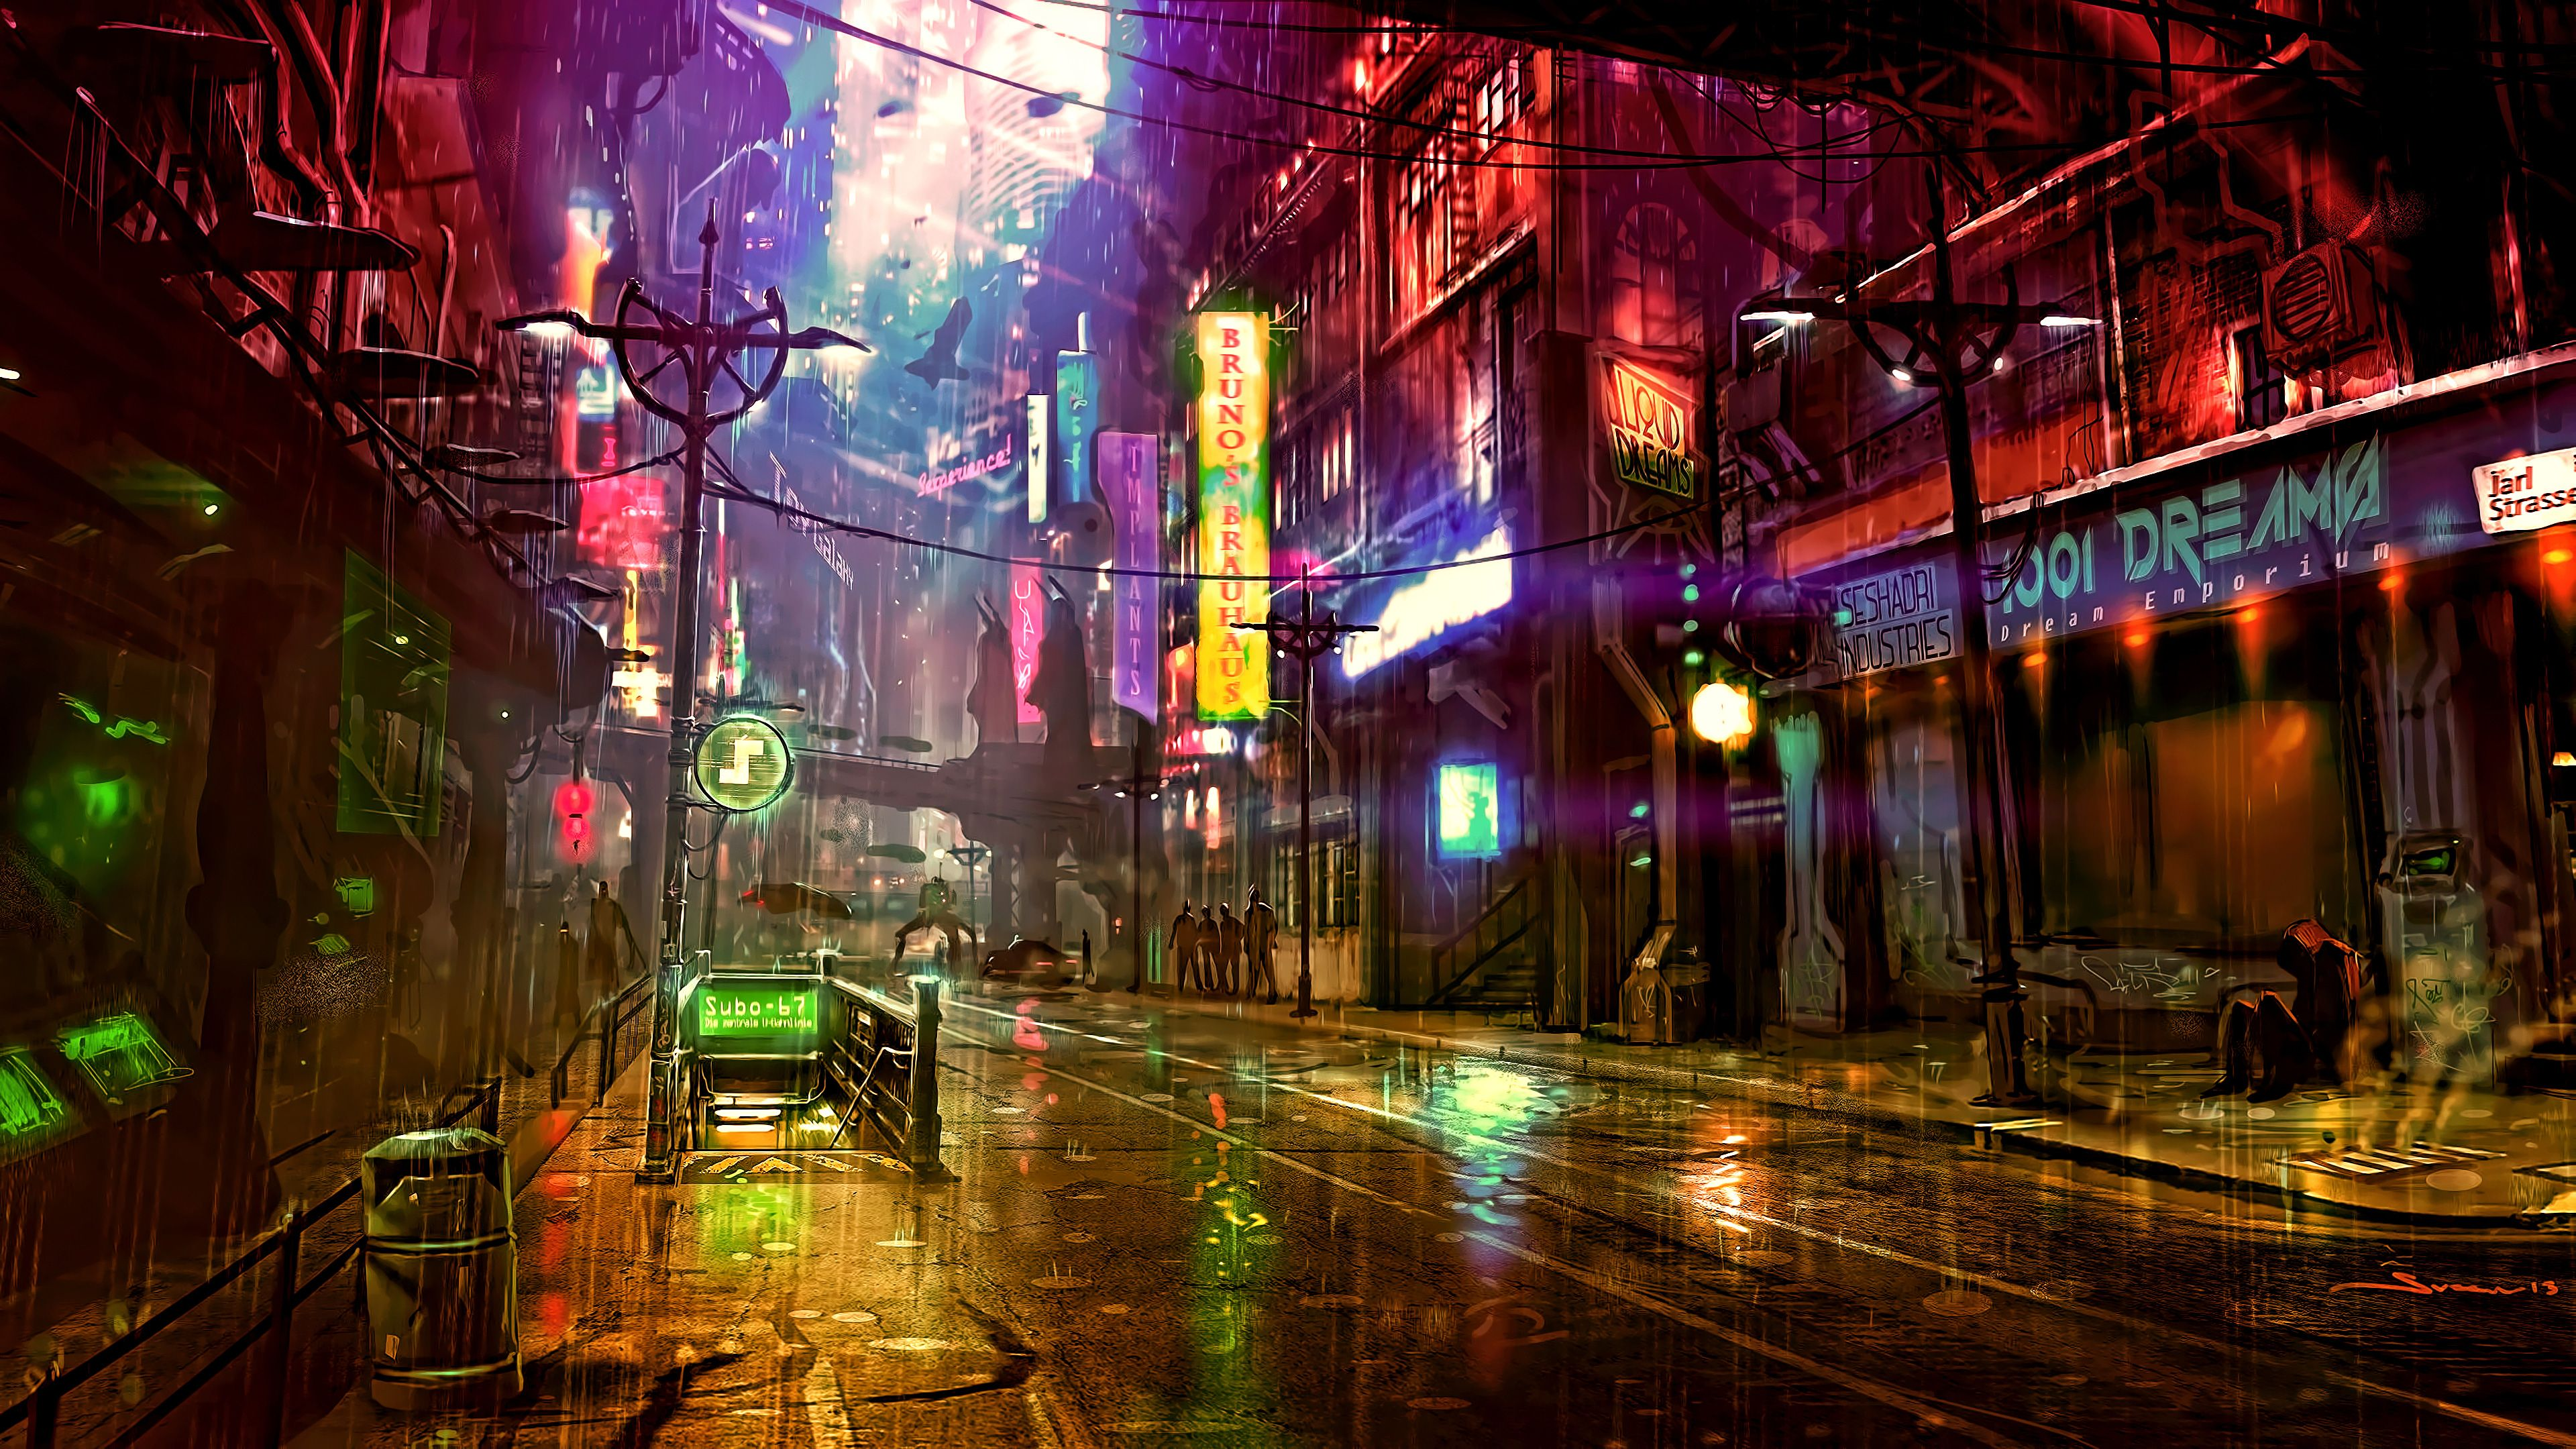 Wallpaper 4k Futuristic City Cyberpunk Neon Street Digital